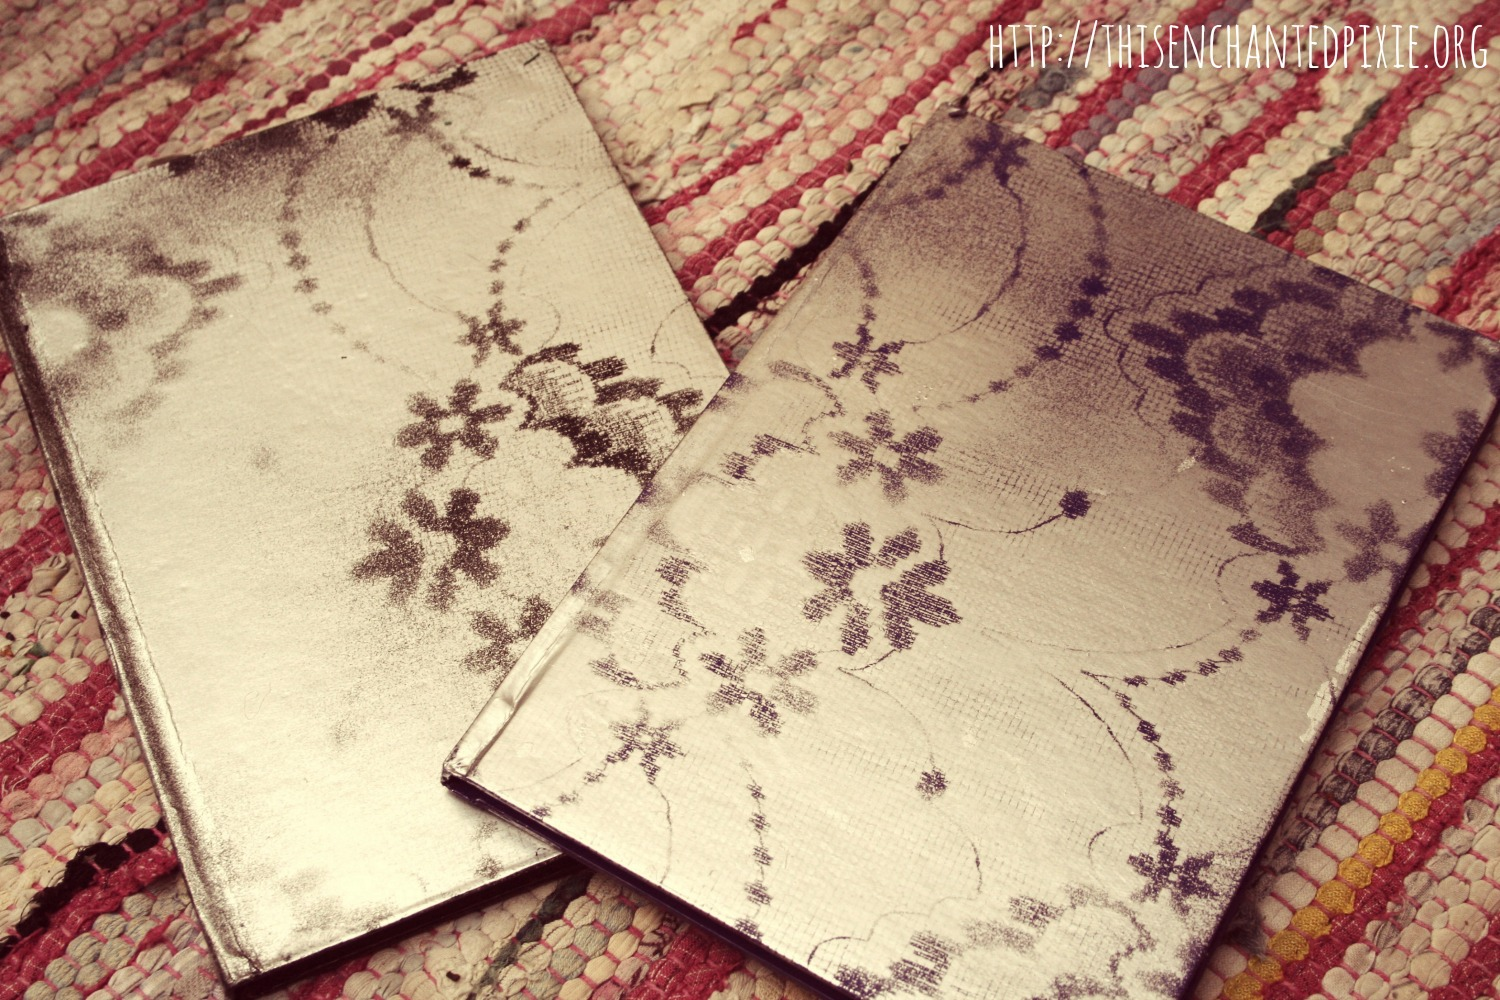 diy lace effect journal